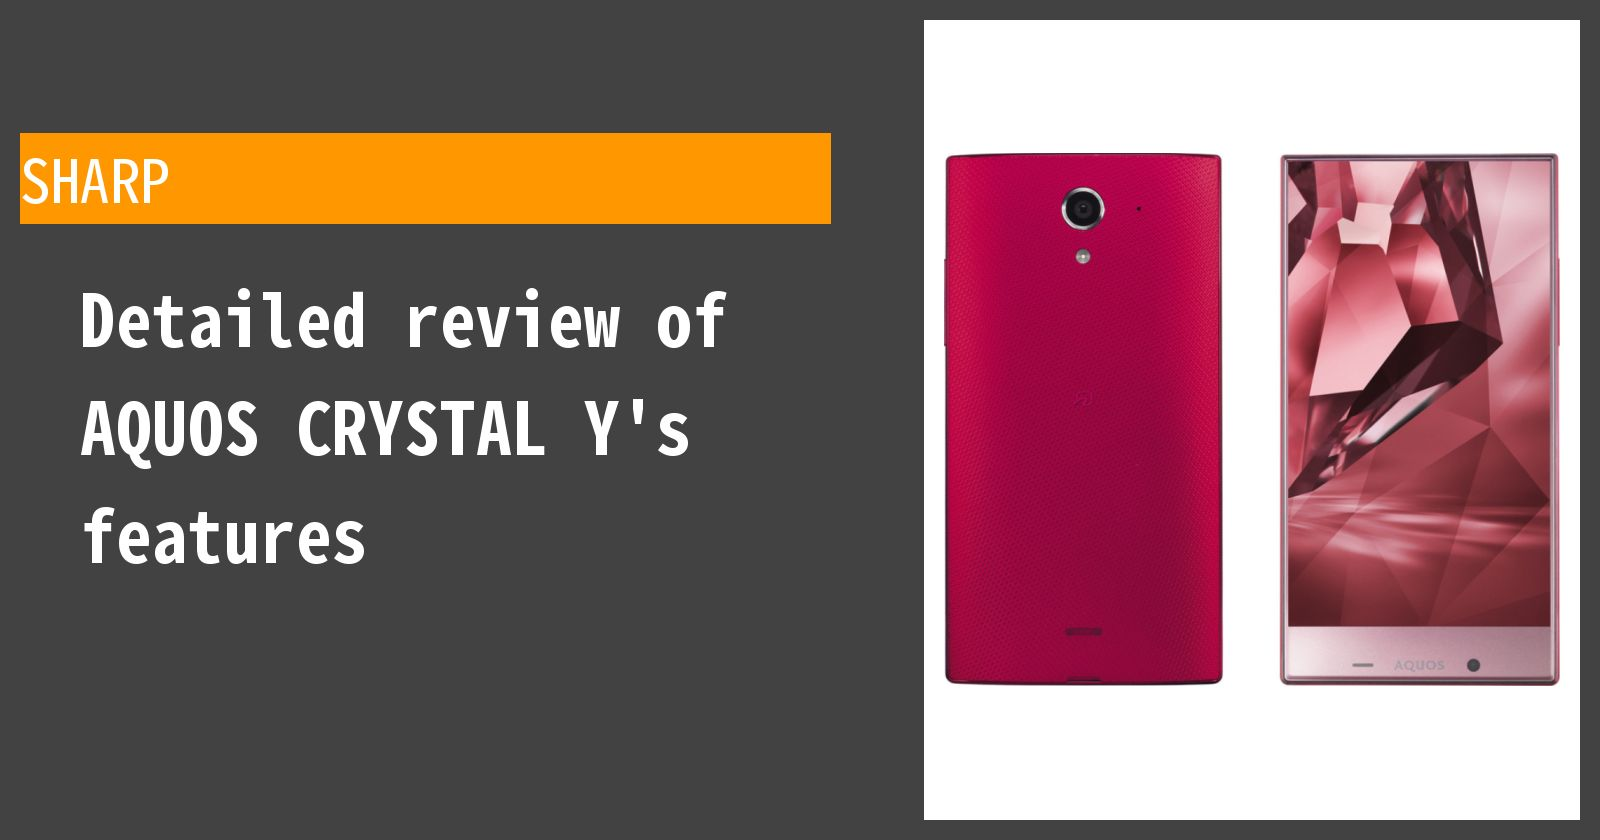 Detailed review of AQUOS CRYSTAL Y 402SH's features